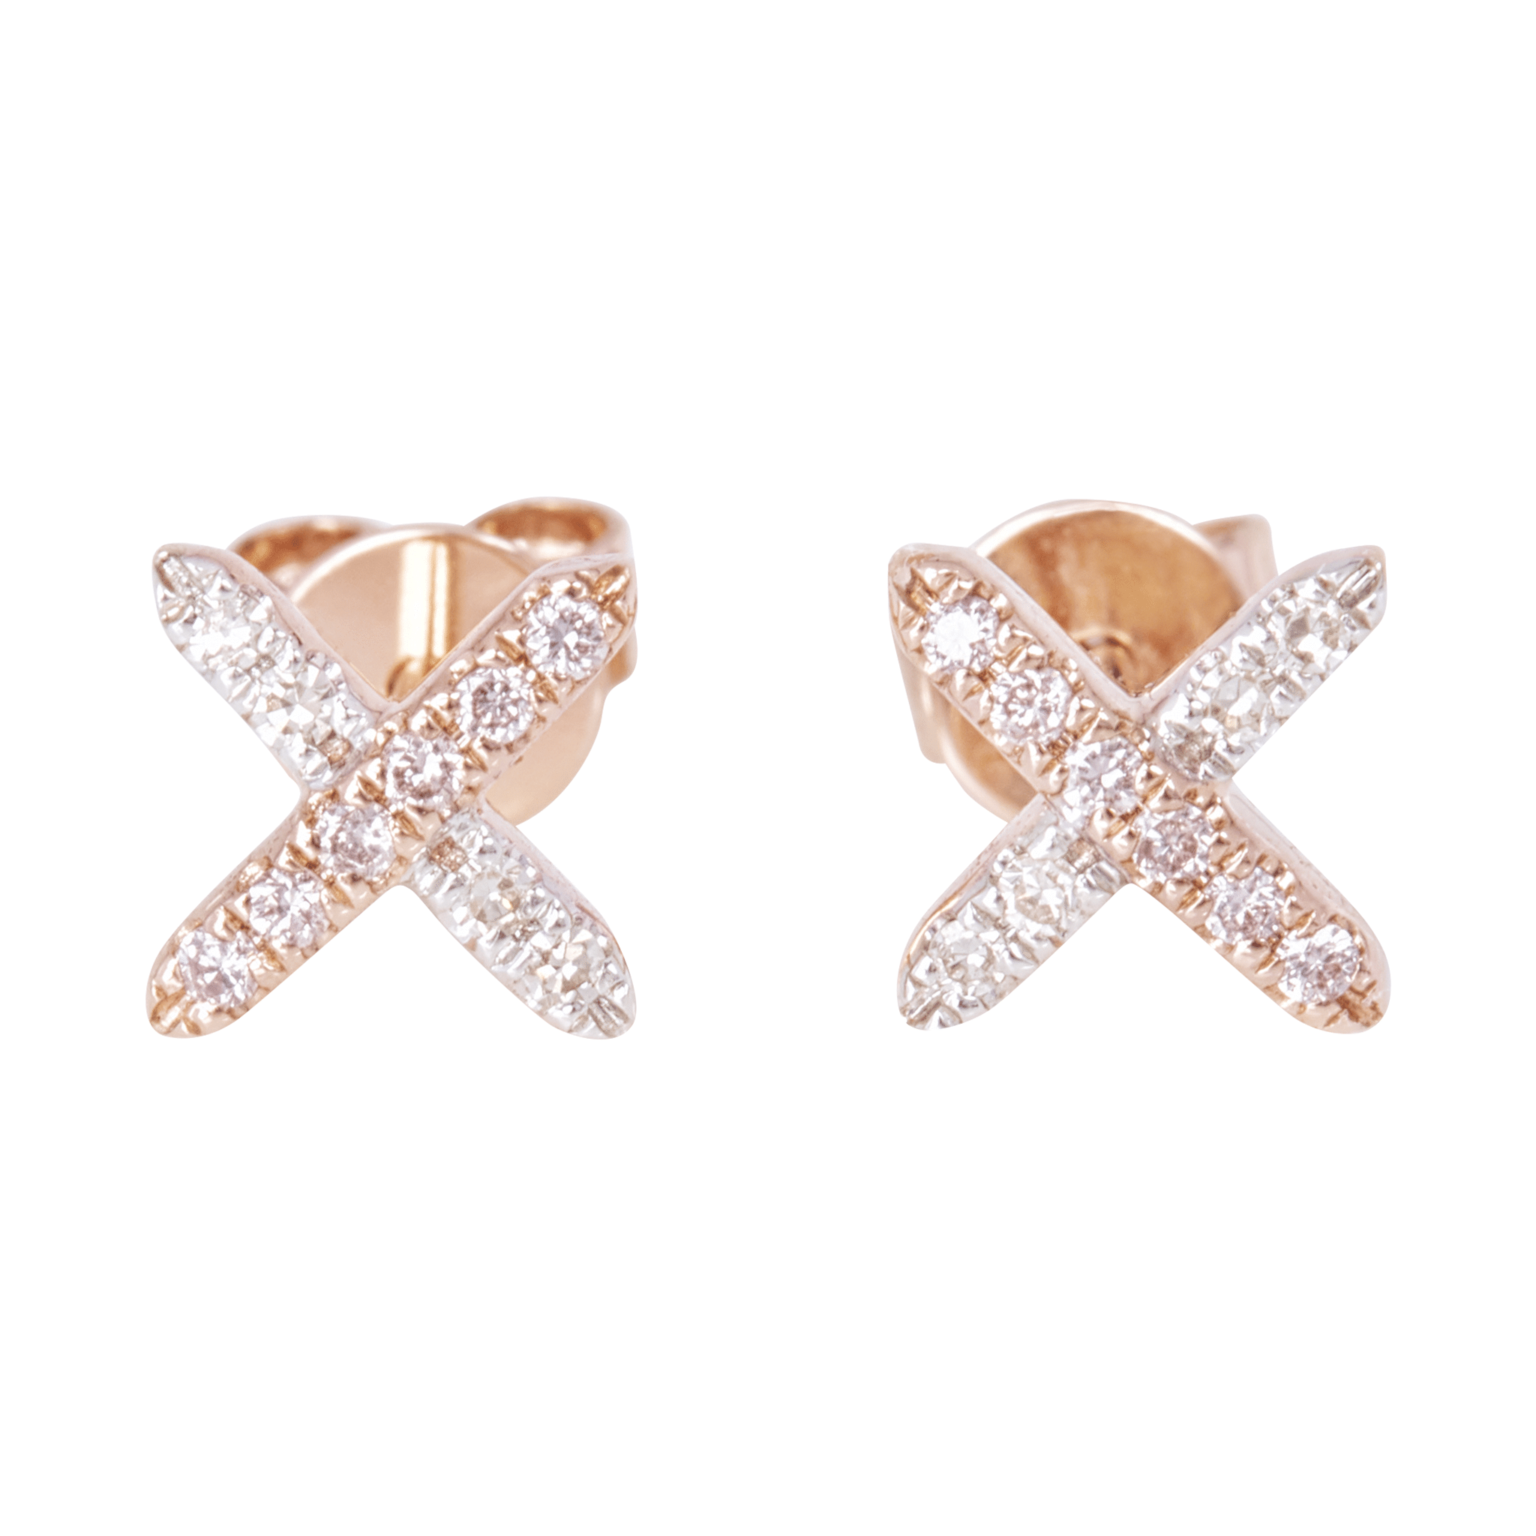 Eminence Pinks Diamond Cross Earrings